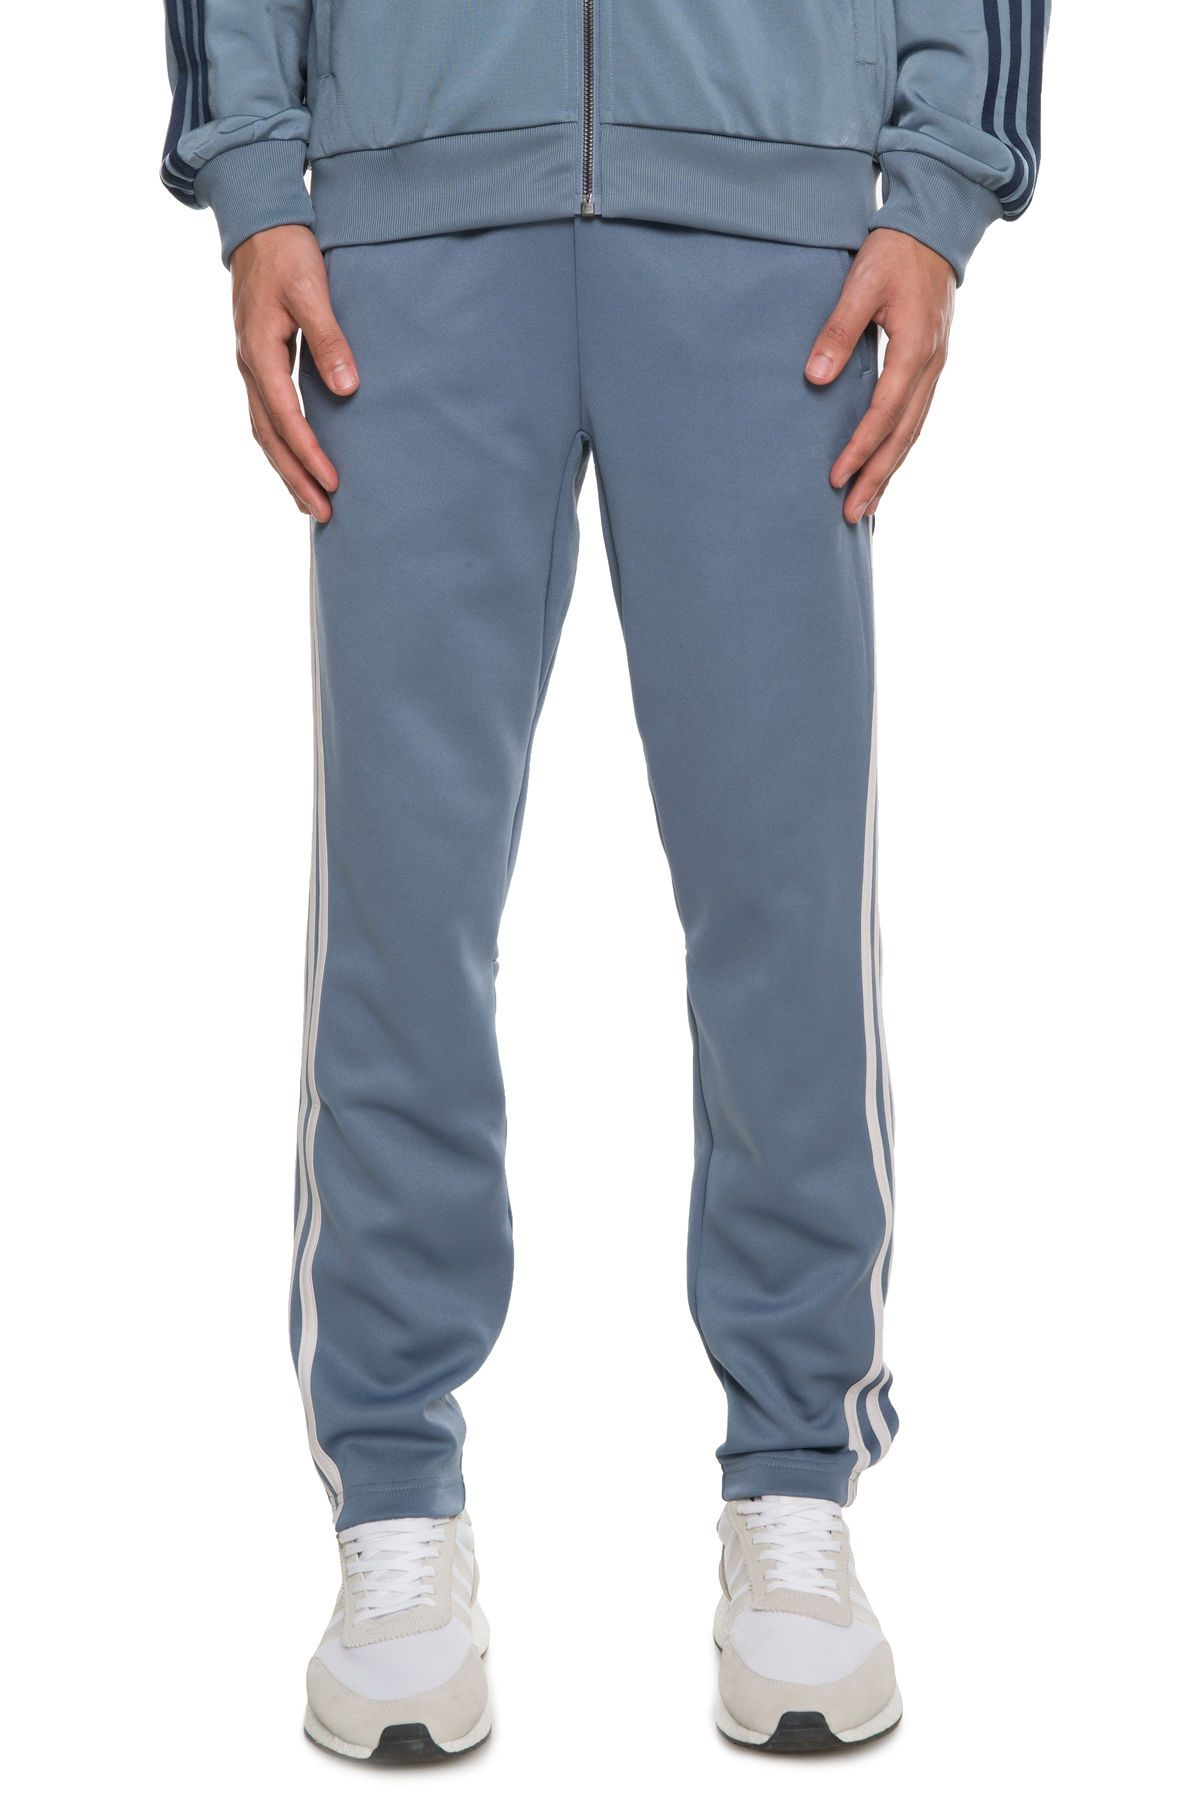 la moitié e1a48 9ad32 The ID Track Pant in Raw Steel Steel